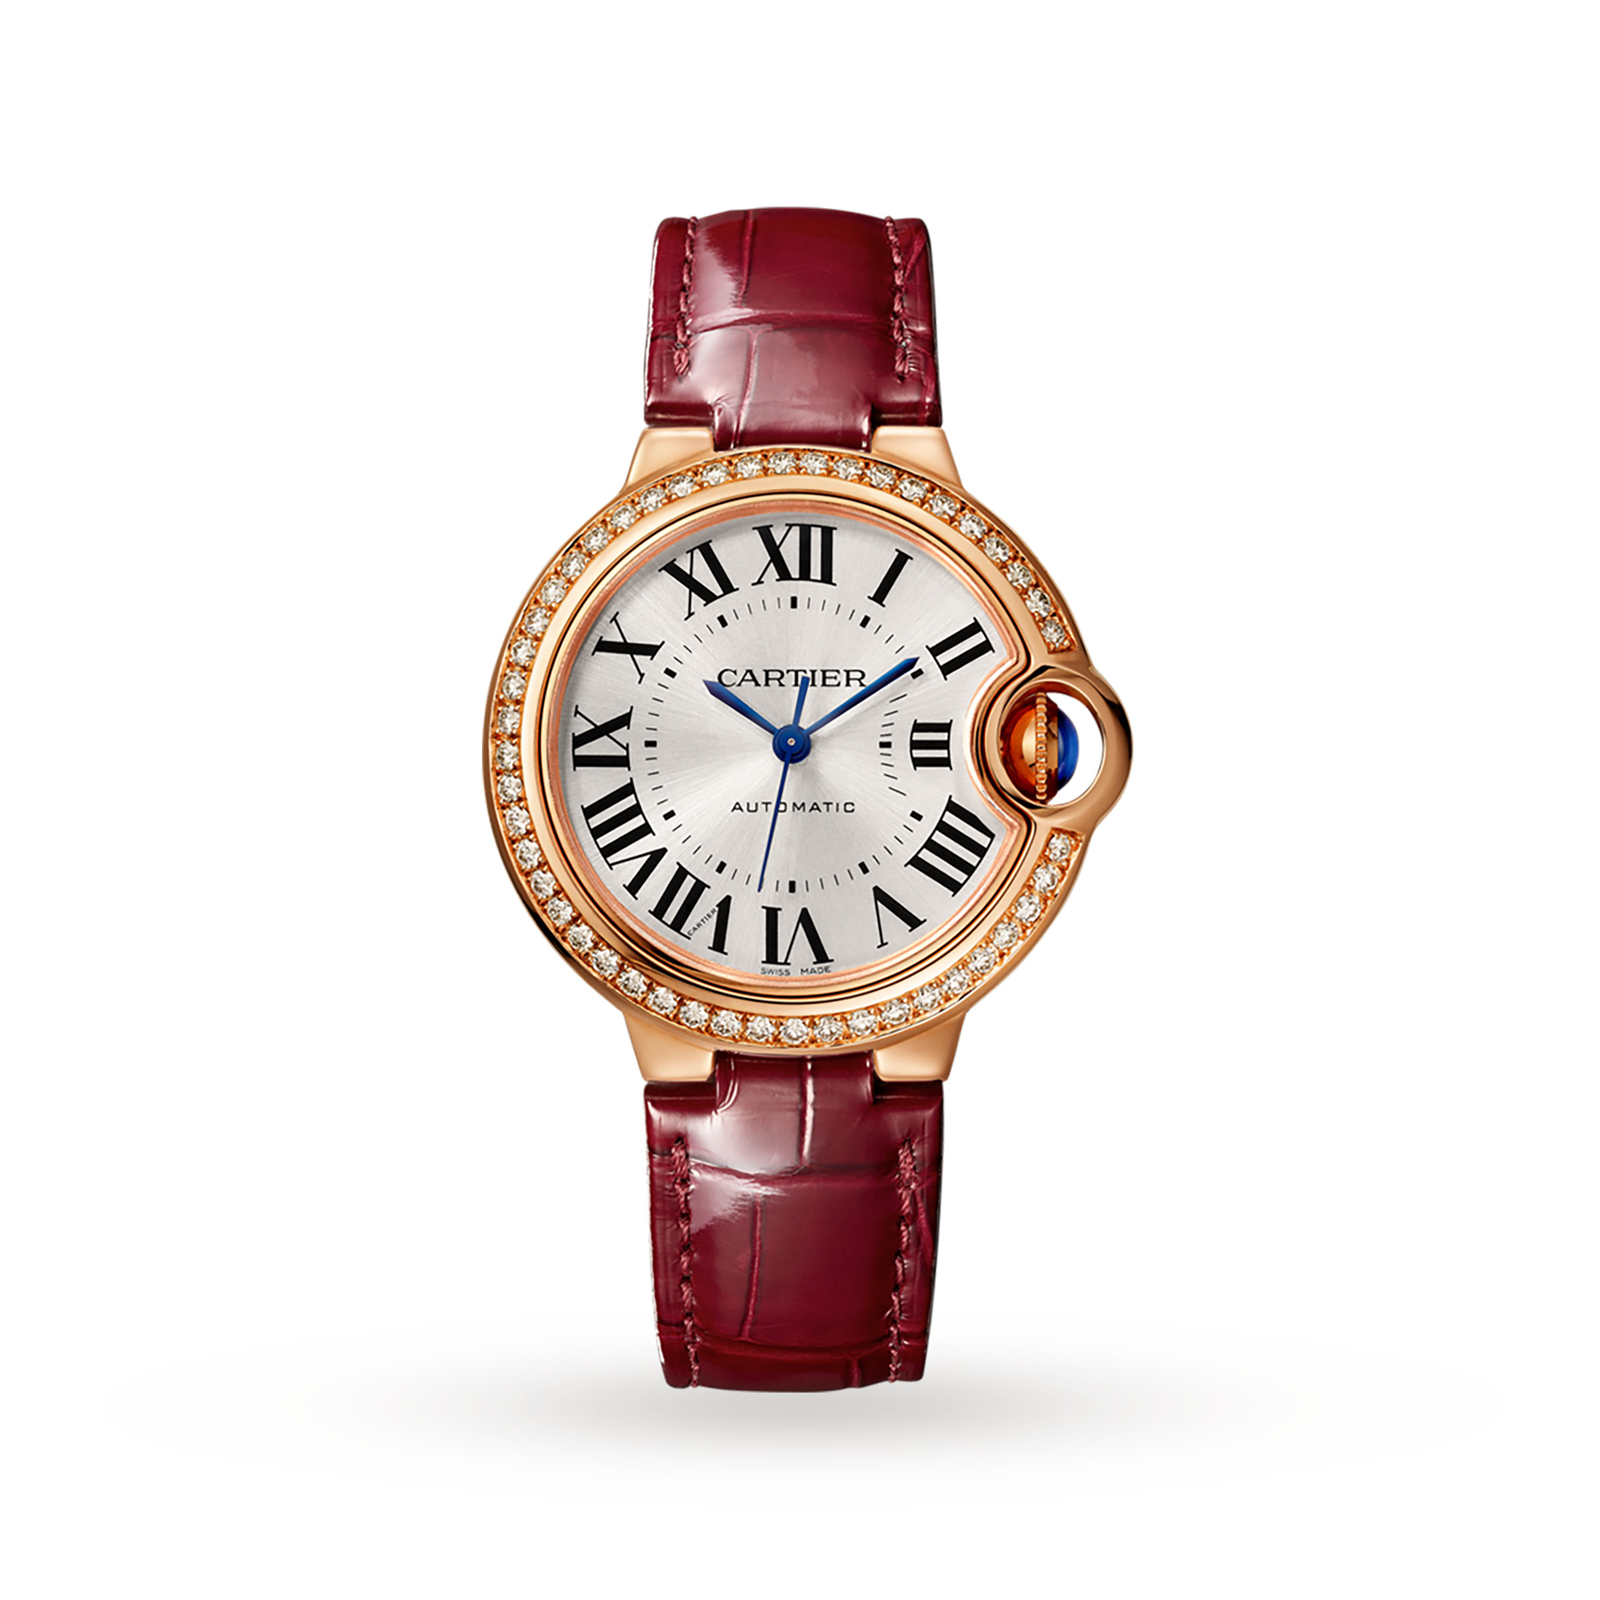 Ballon Bleu de Cartier watch, 33 mm, rose gold, diamonds, leather